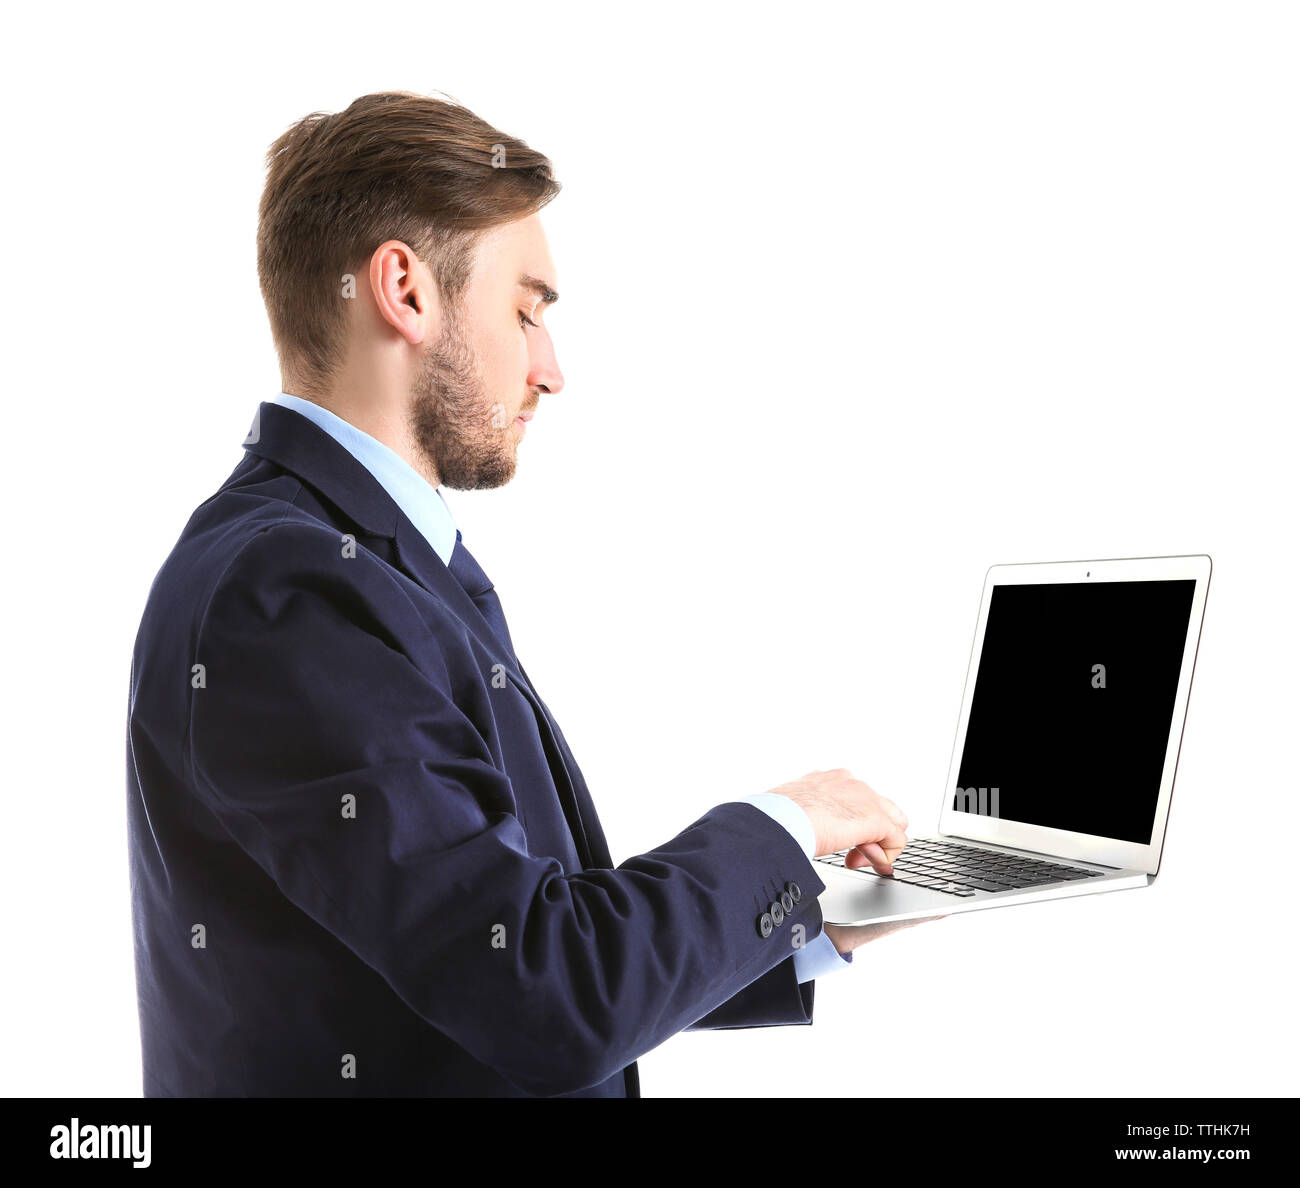 Young man in suit using laptop, isolated on white - Stock Image